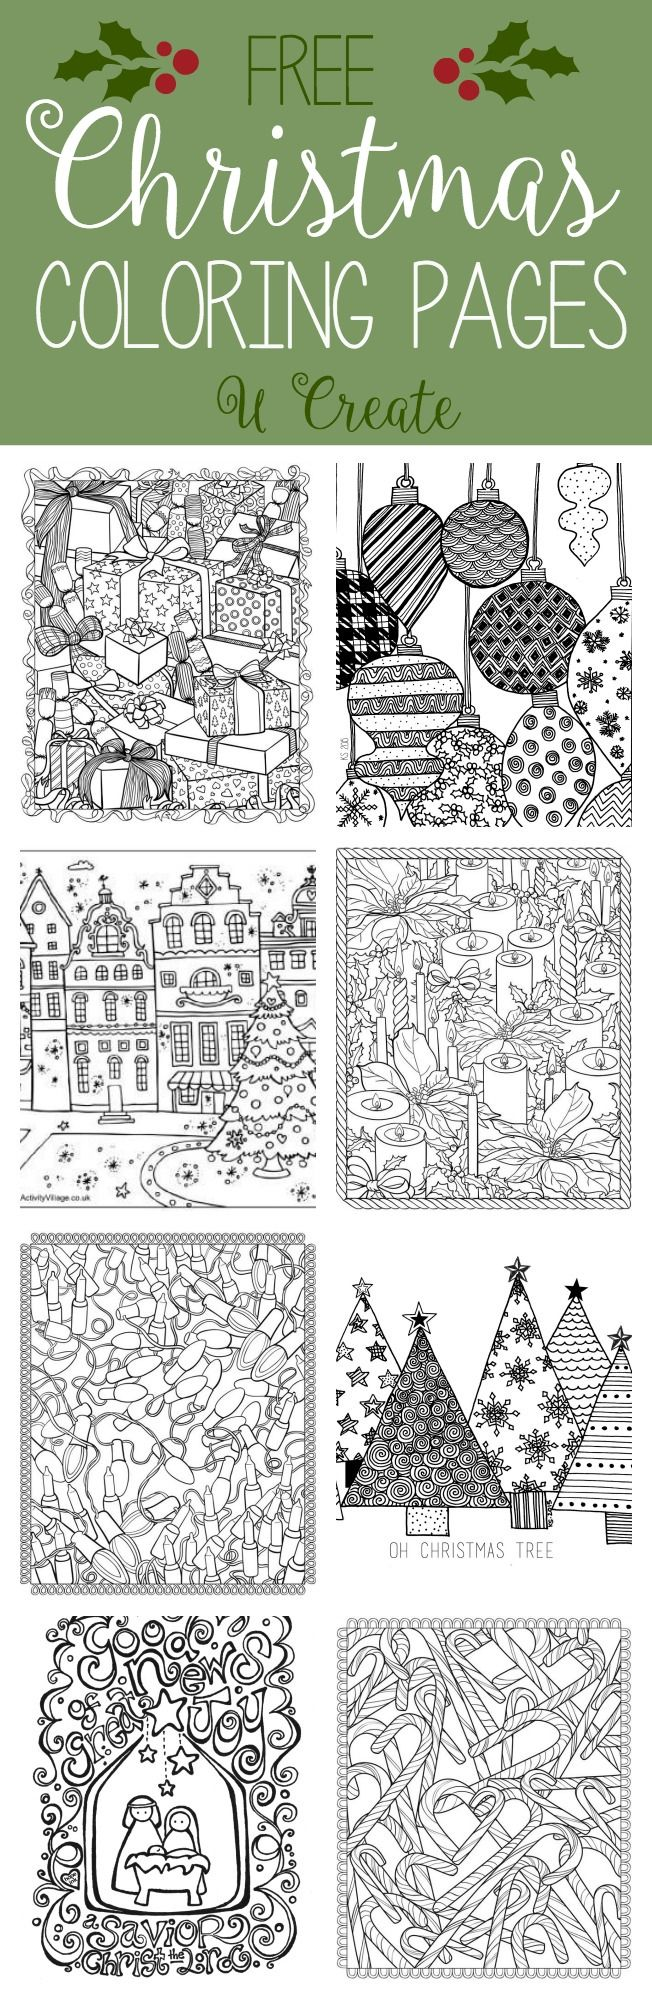 free christmas coloring pages u create coloring